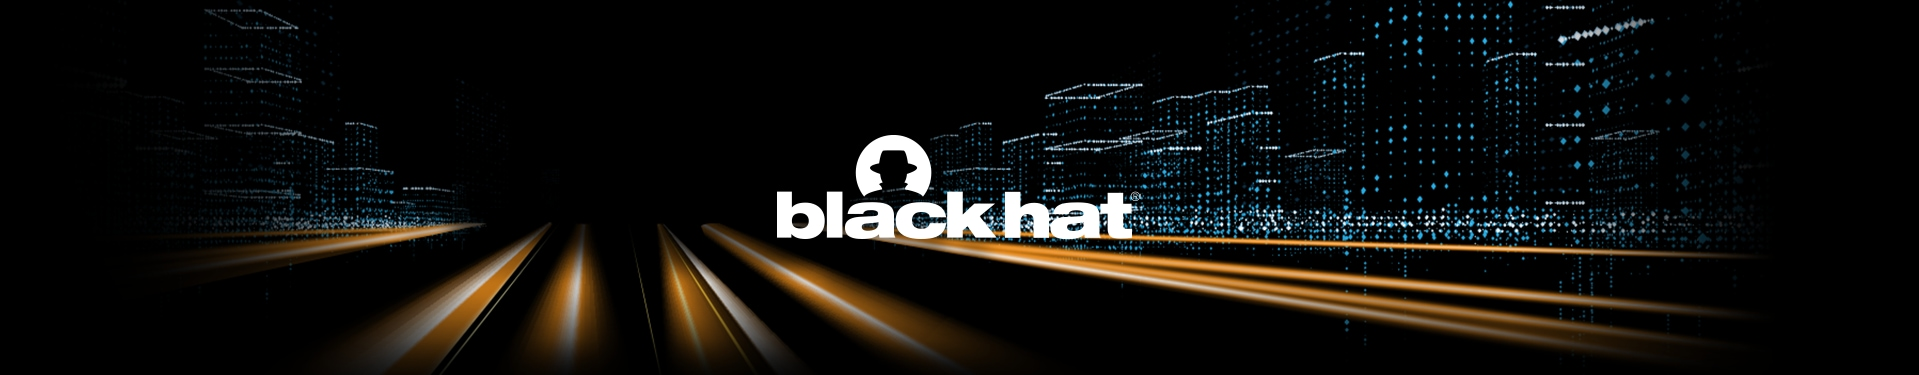 Black Hat USA 2019 event graphics with a conceptual, futuristic city scape at night intersected by beams of light and overlapped by the Black Hat name and logo of a person wearing a hat